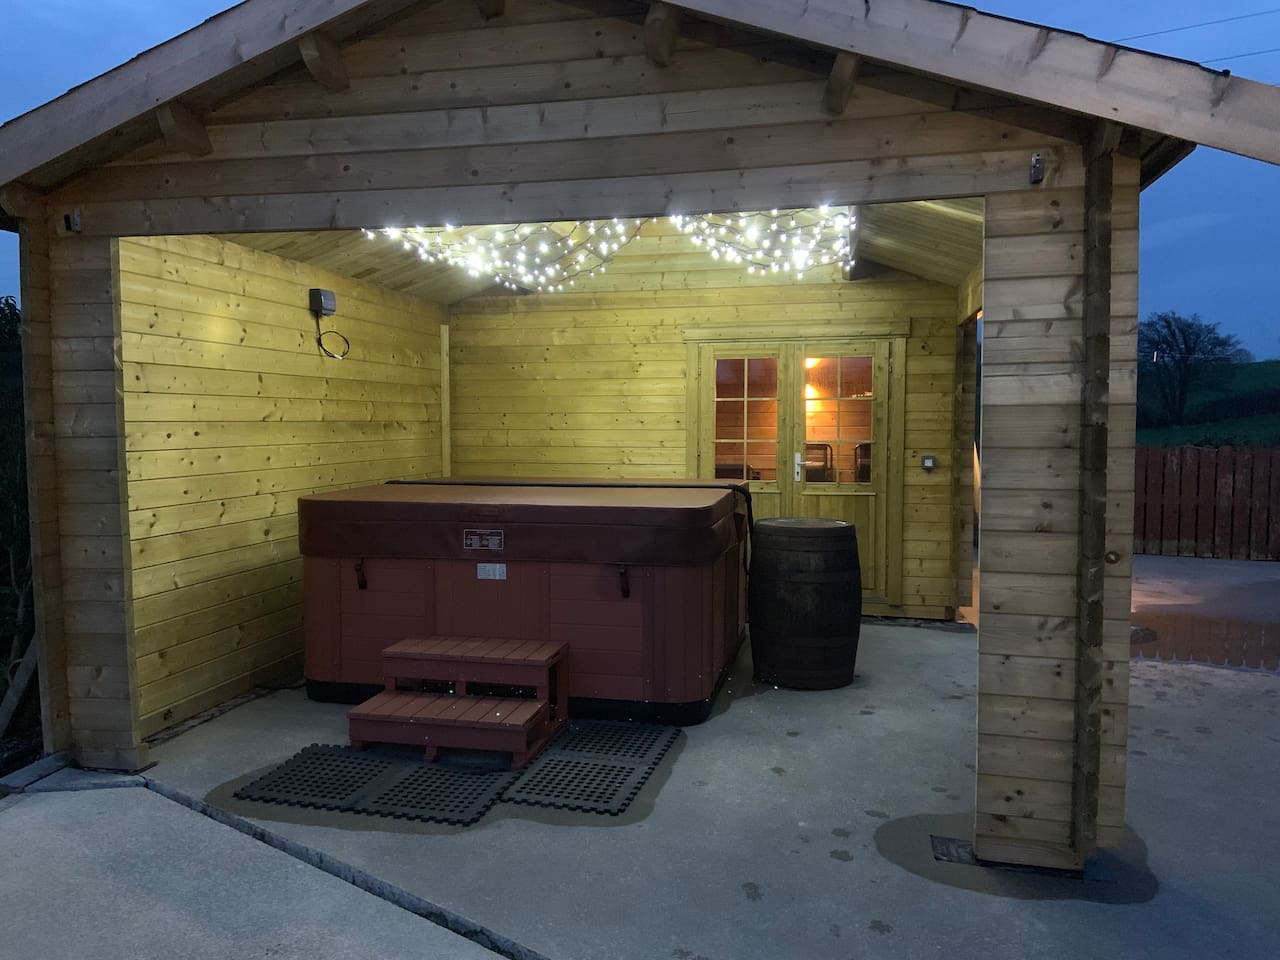 Balboa seven seater spa hot tub with 134 jets for massaging and leaving your whole body feeling relaxed. With 26 fibre optic colour changing lights and hydro massage pumps.  Fairy lights are installed above hot tub for ambience sheltered within cabin